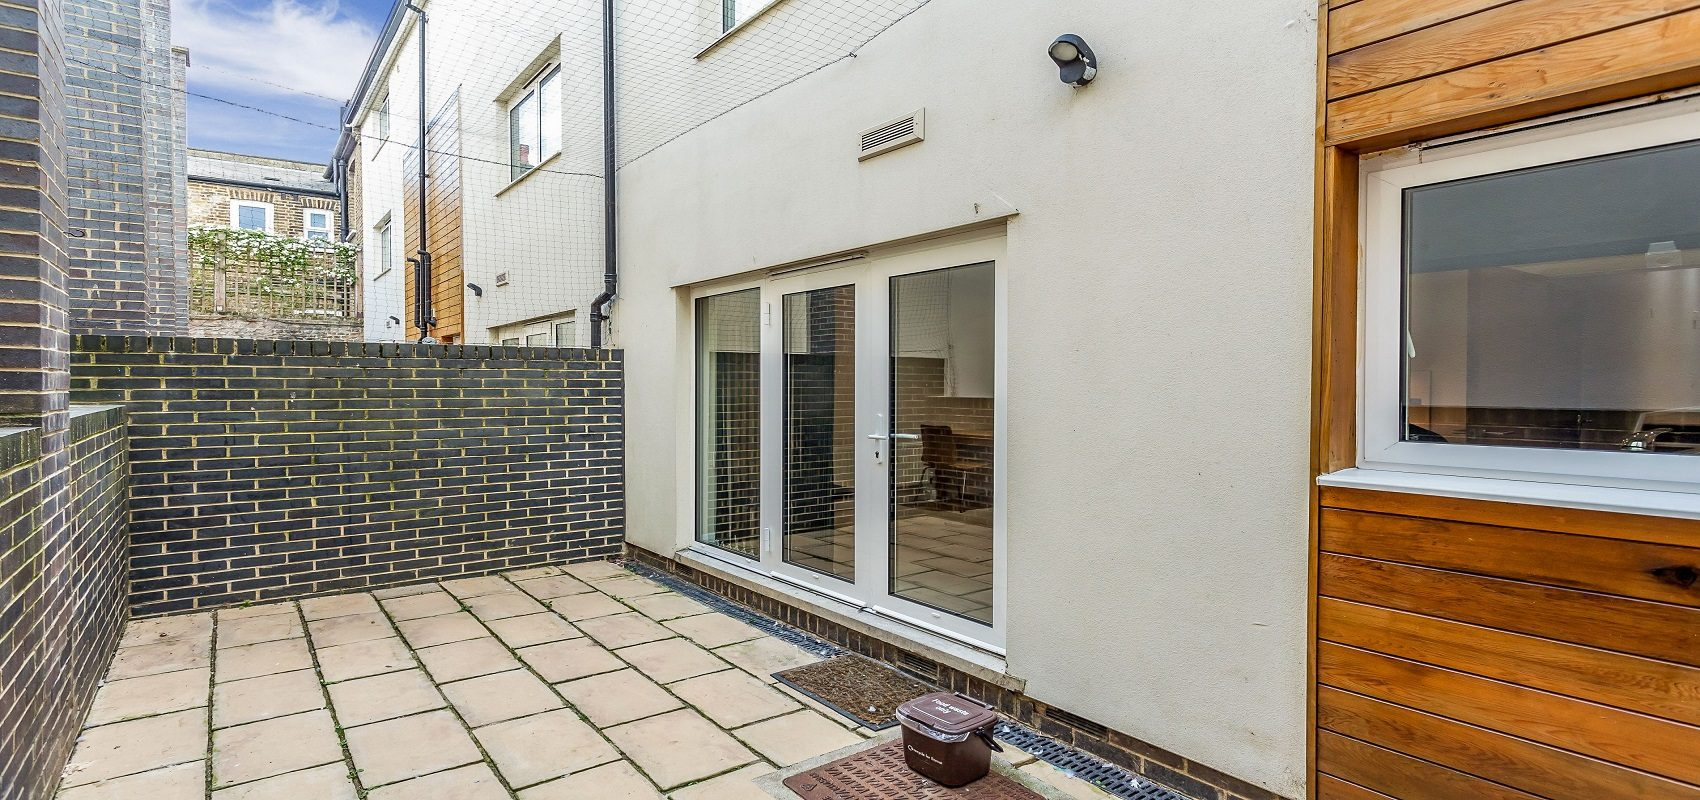 BEAUTIFULLY FINISHED BRIGHT FAMILY HOME